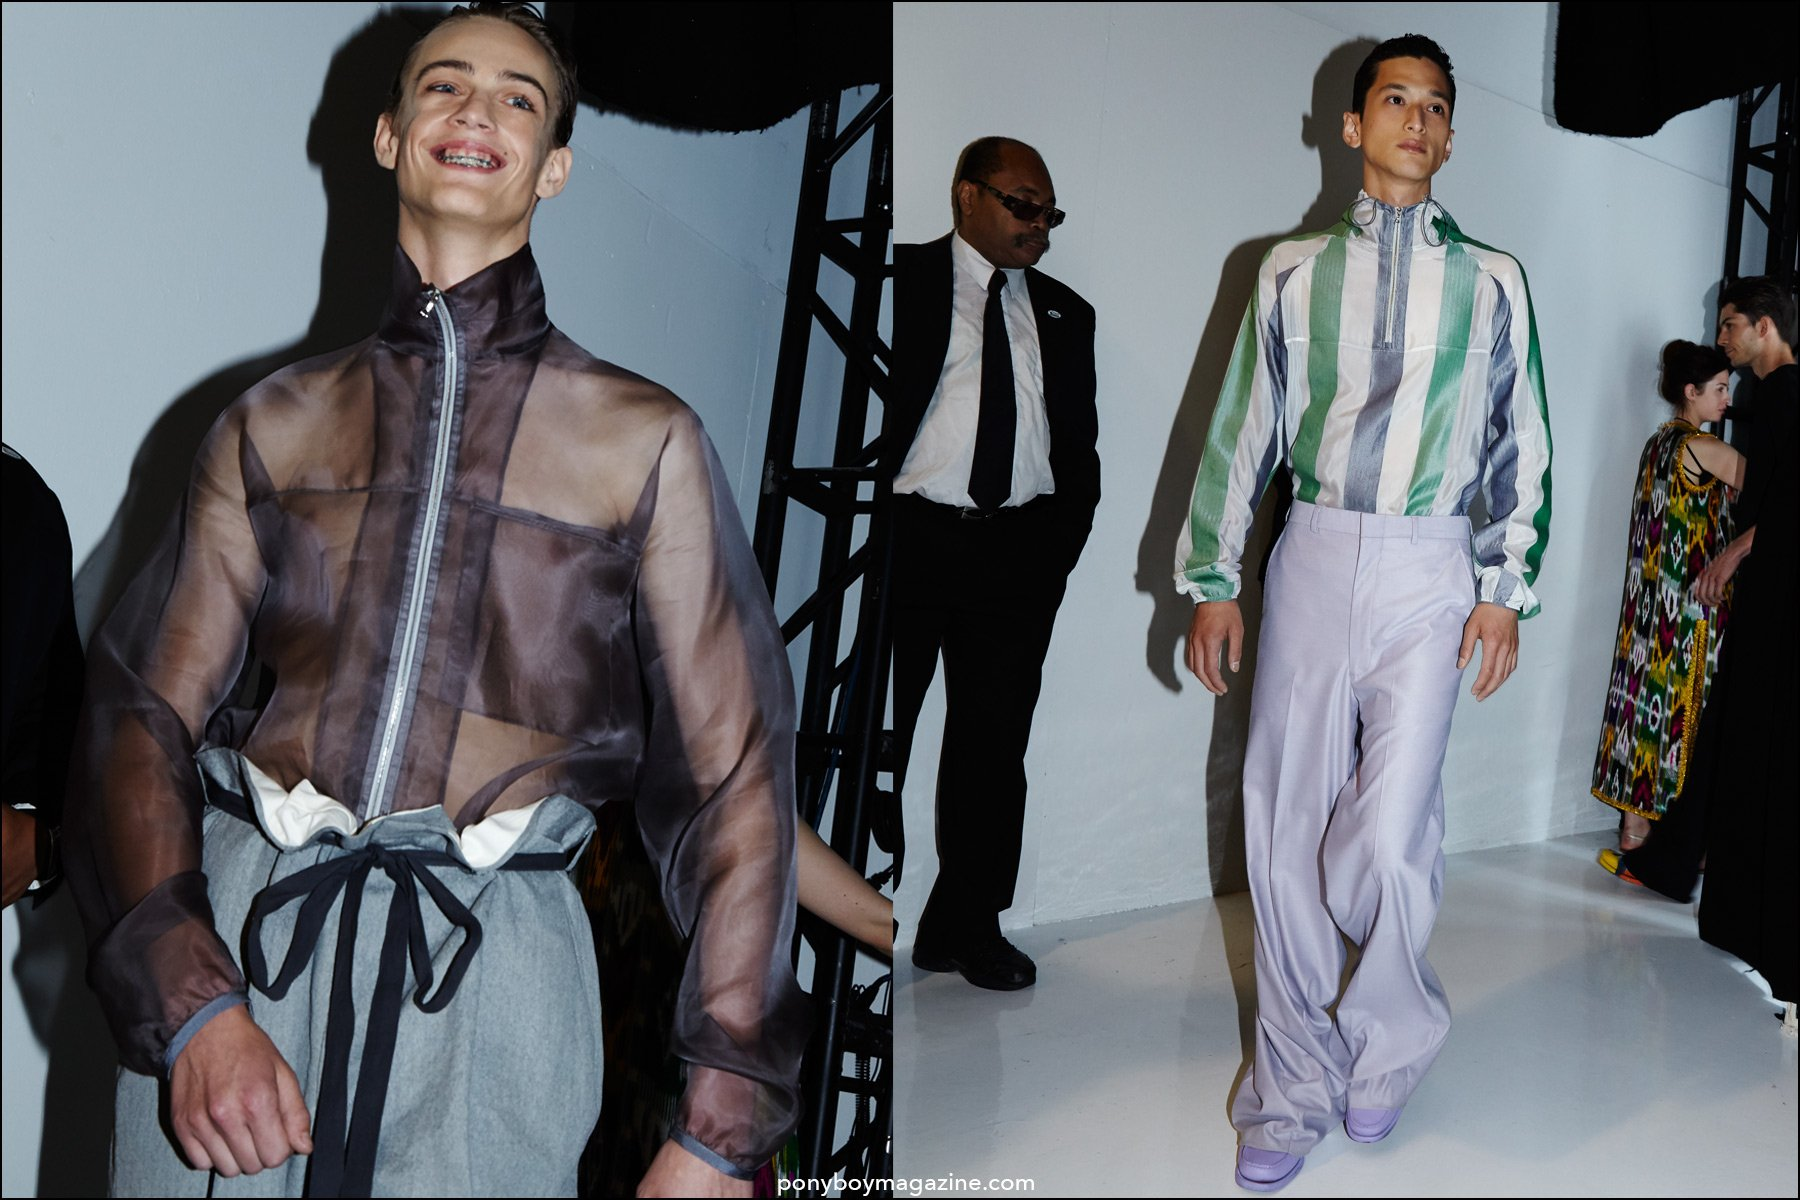 Models Charlie James and Hideki Asahina exit the runway at Duckie Brown S/S16 menswear collection. Photographed by Alexander Thompson for Ponyboy magazine NY.